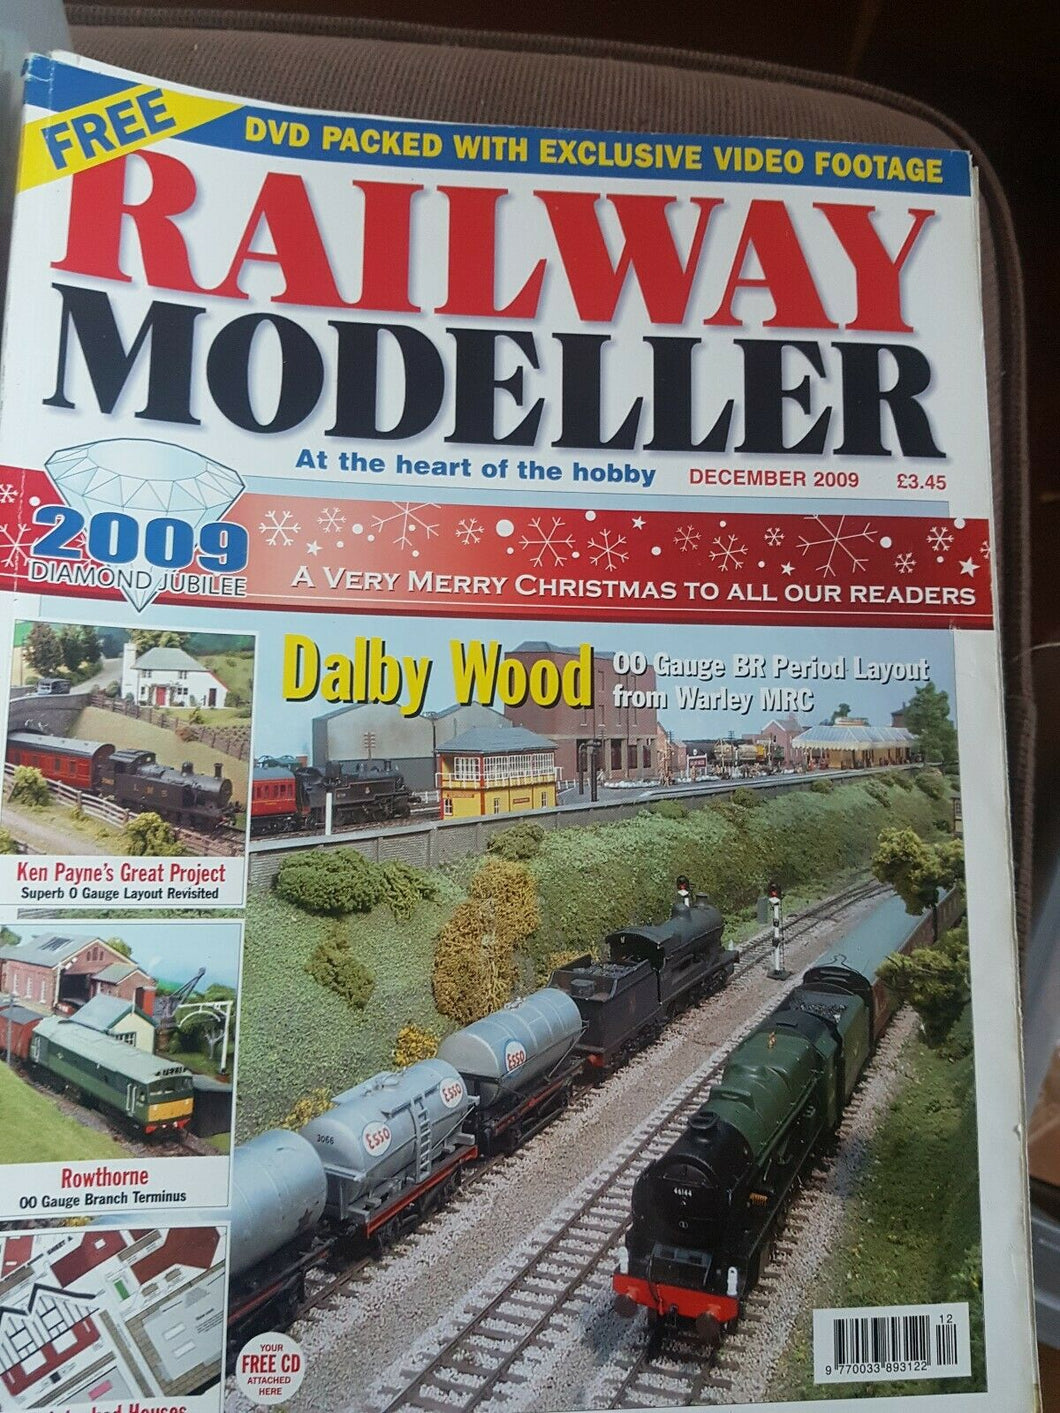 Railway modeller magazine December 2009